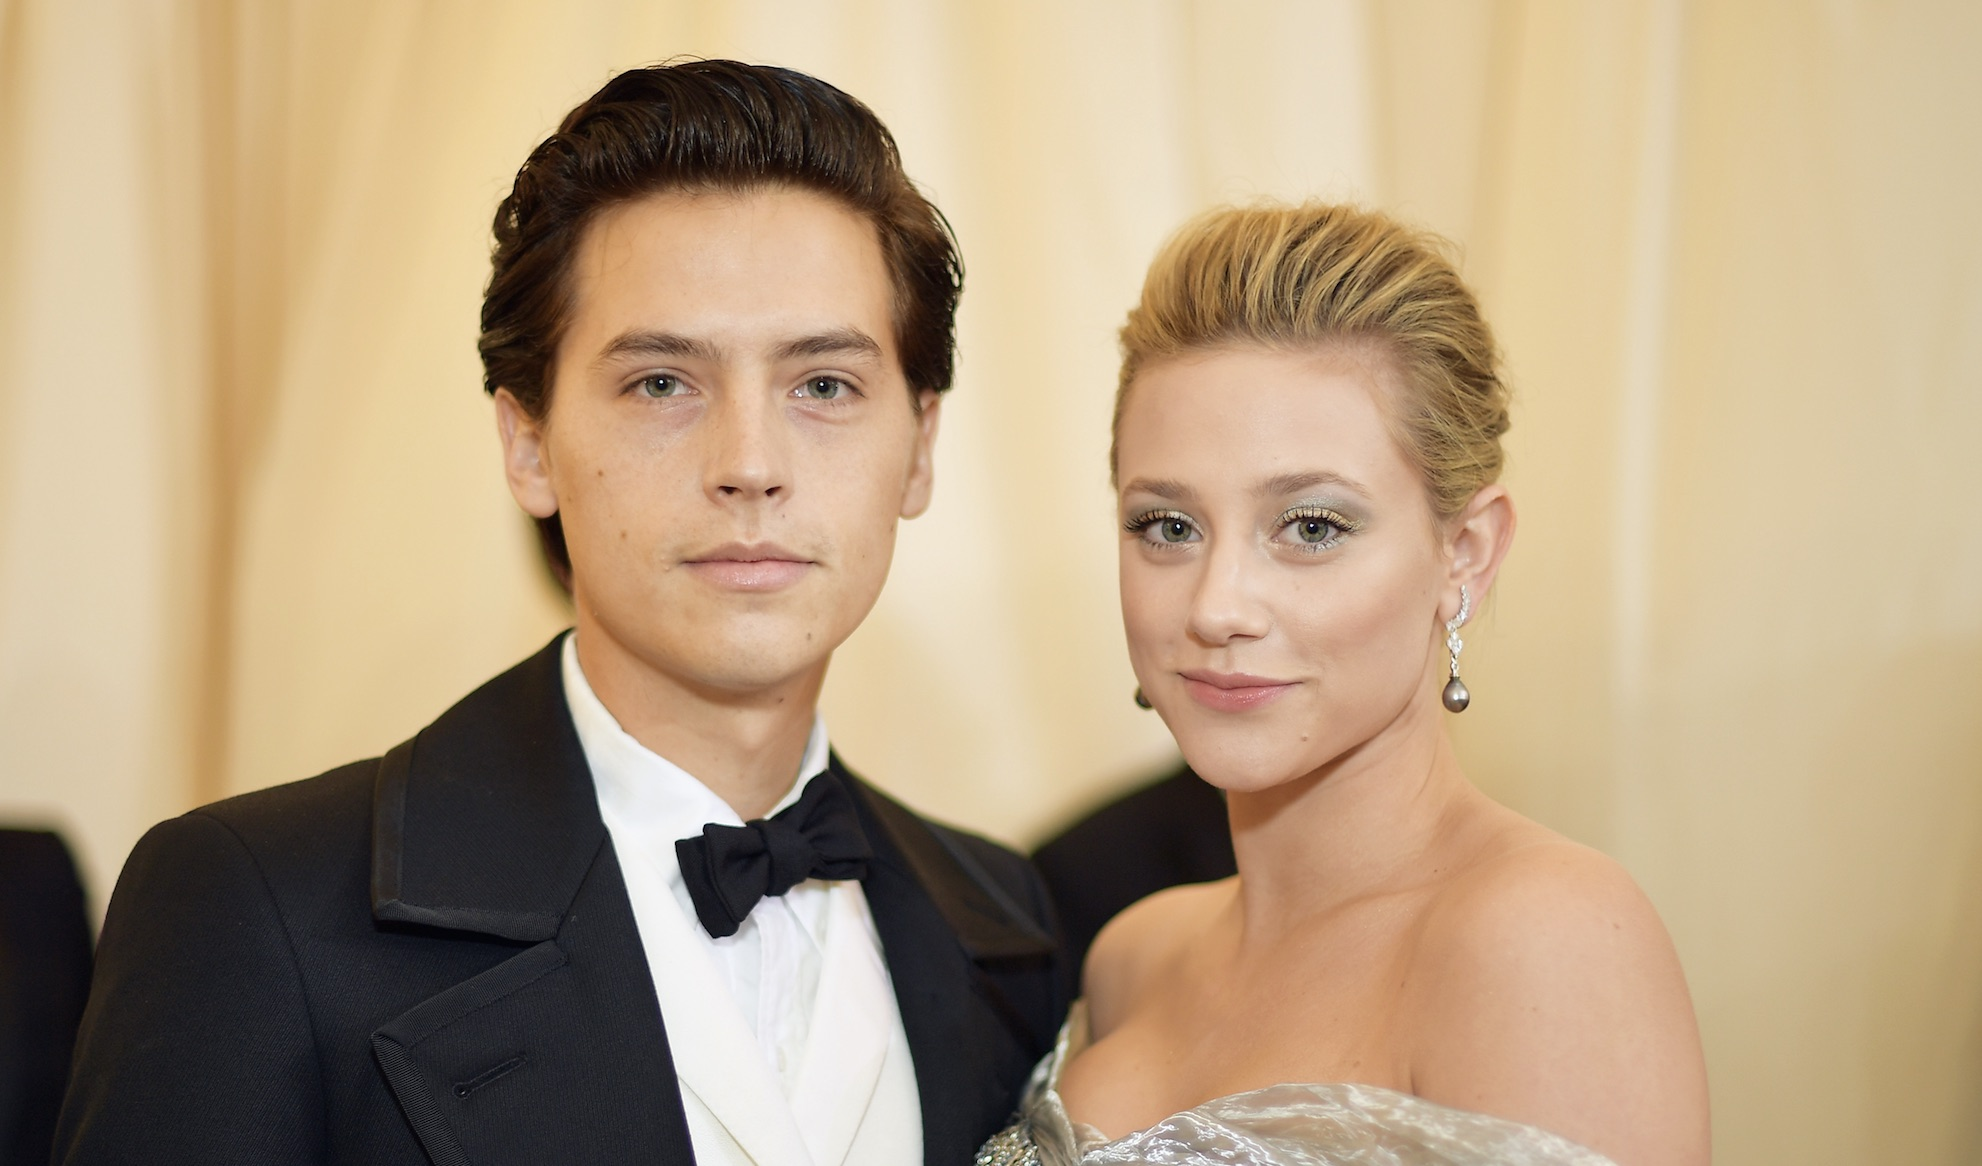 Lili Reinhart didn't have the best first impression of Cole Sprouse, and it's crazy relatable